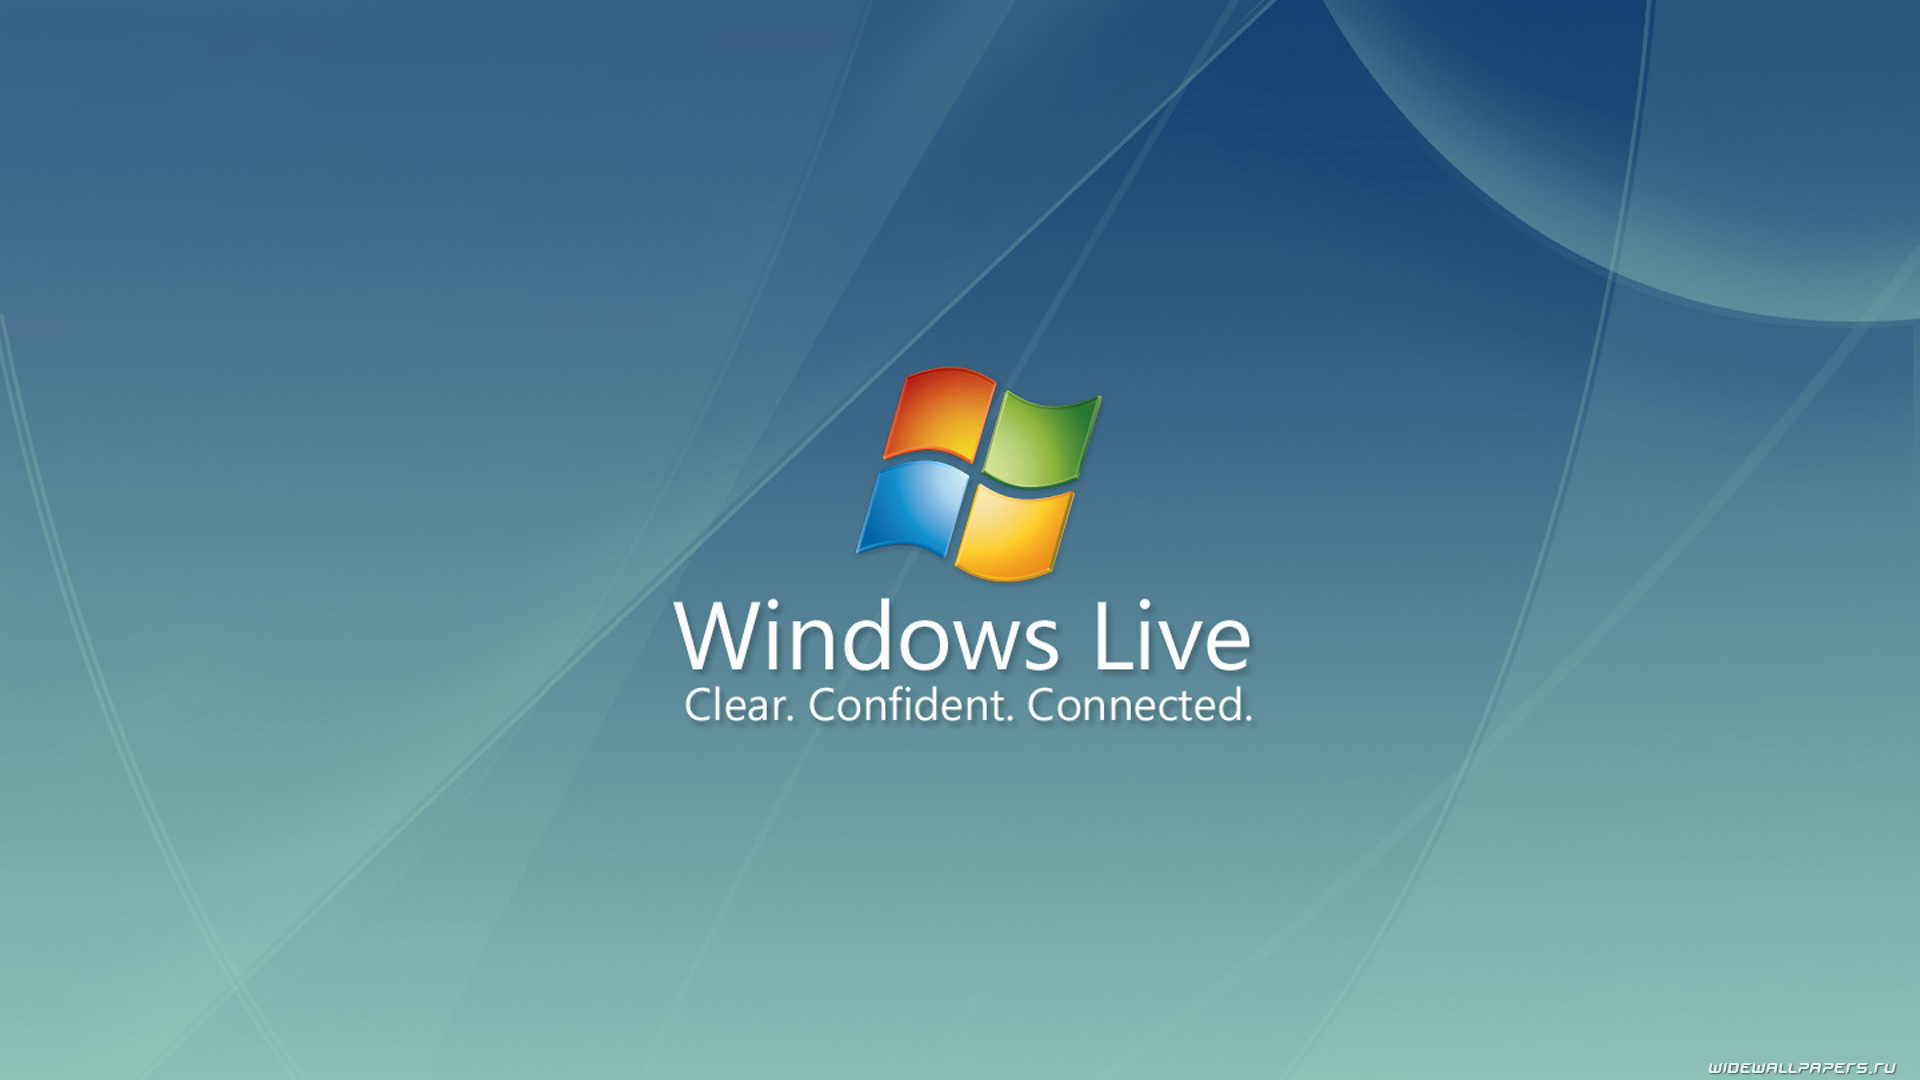 Free Live Wallpapers For Windows 8: Live Wallpapers Windows 8 (28 Wallpapers)